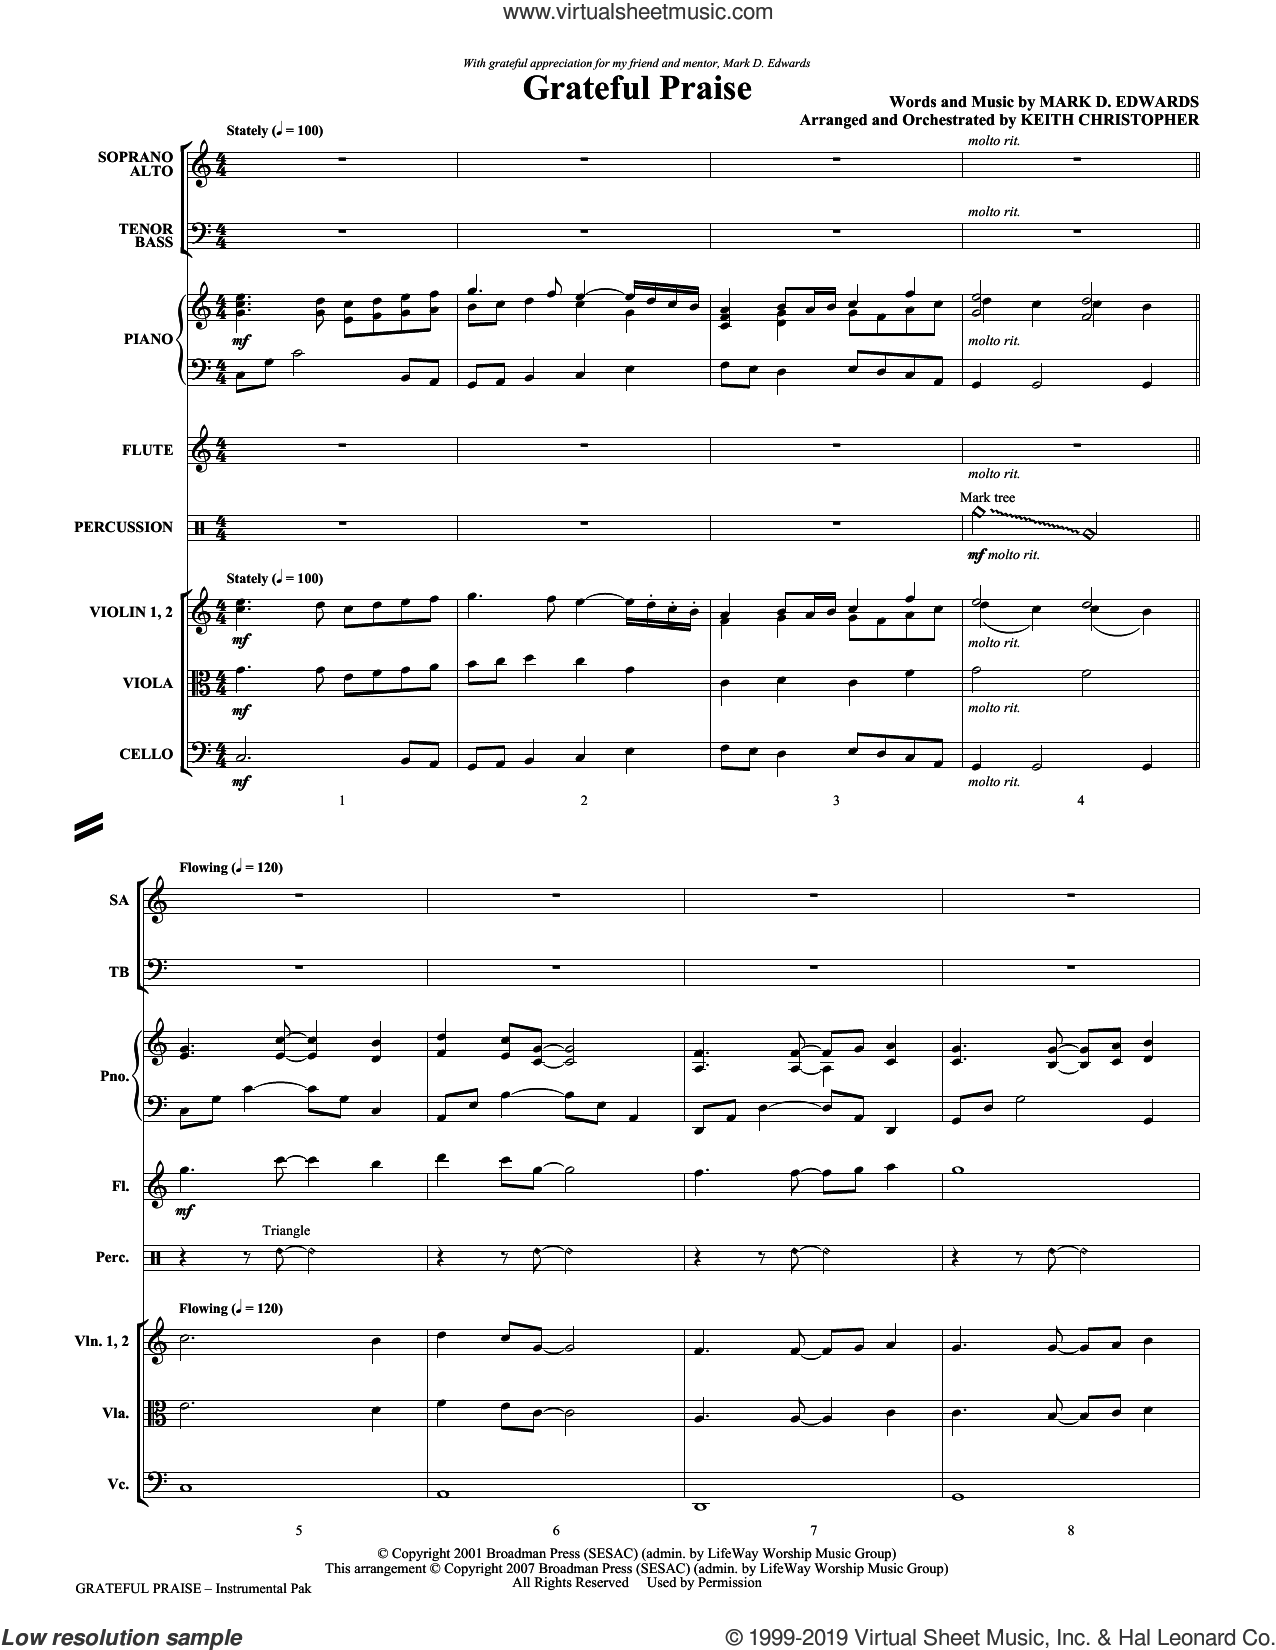 Grateful Praise (COMPLETE) sheet music for orchestra/band (chamber ensemble) by Mark Hayes, Keith Christopher, Mark D. Edwards and Mark Edwards, intermediate skill level